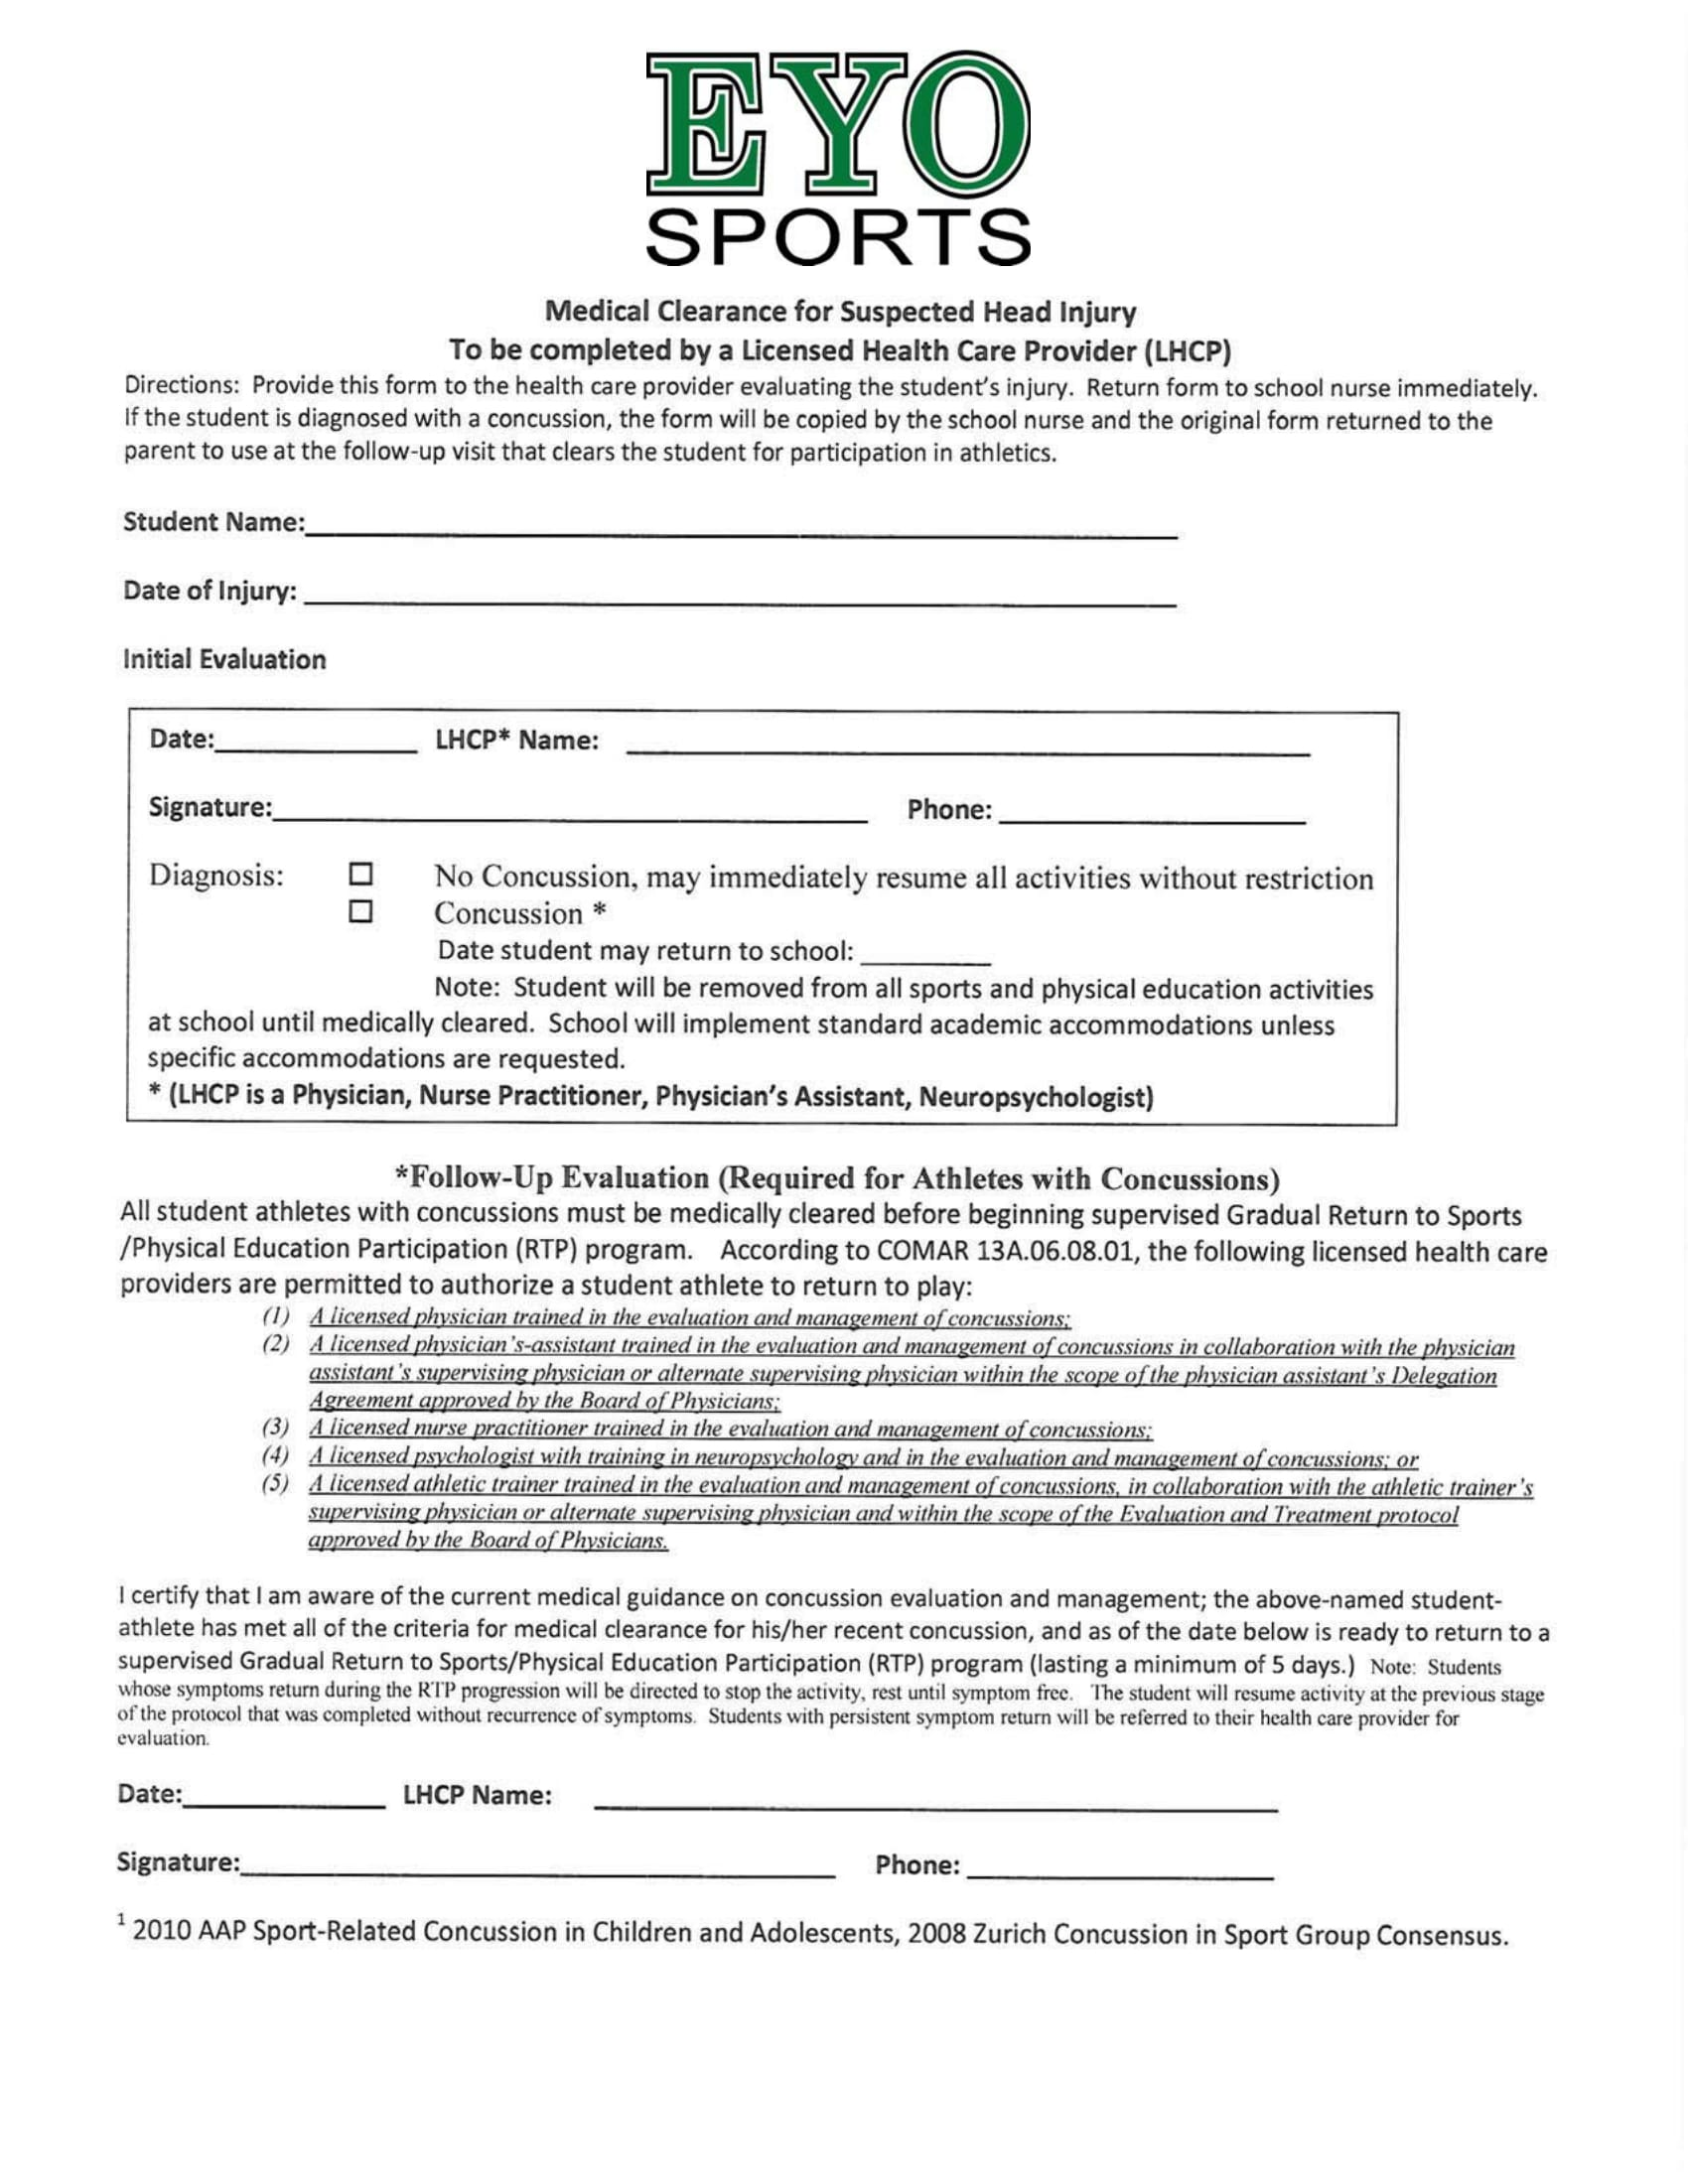 DOCTORu0027S MEDICAL CLEARANCE FORM Sample Medical Clearance Form. You Probably  Already Know That Sample Medical Clearance Form Is One Of The Hottest  Issues ...